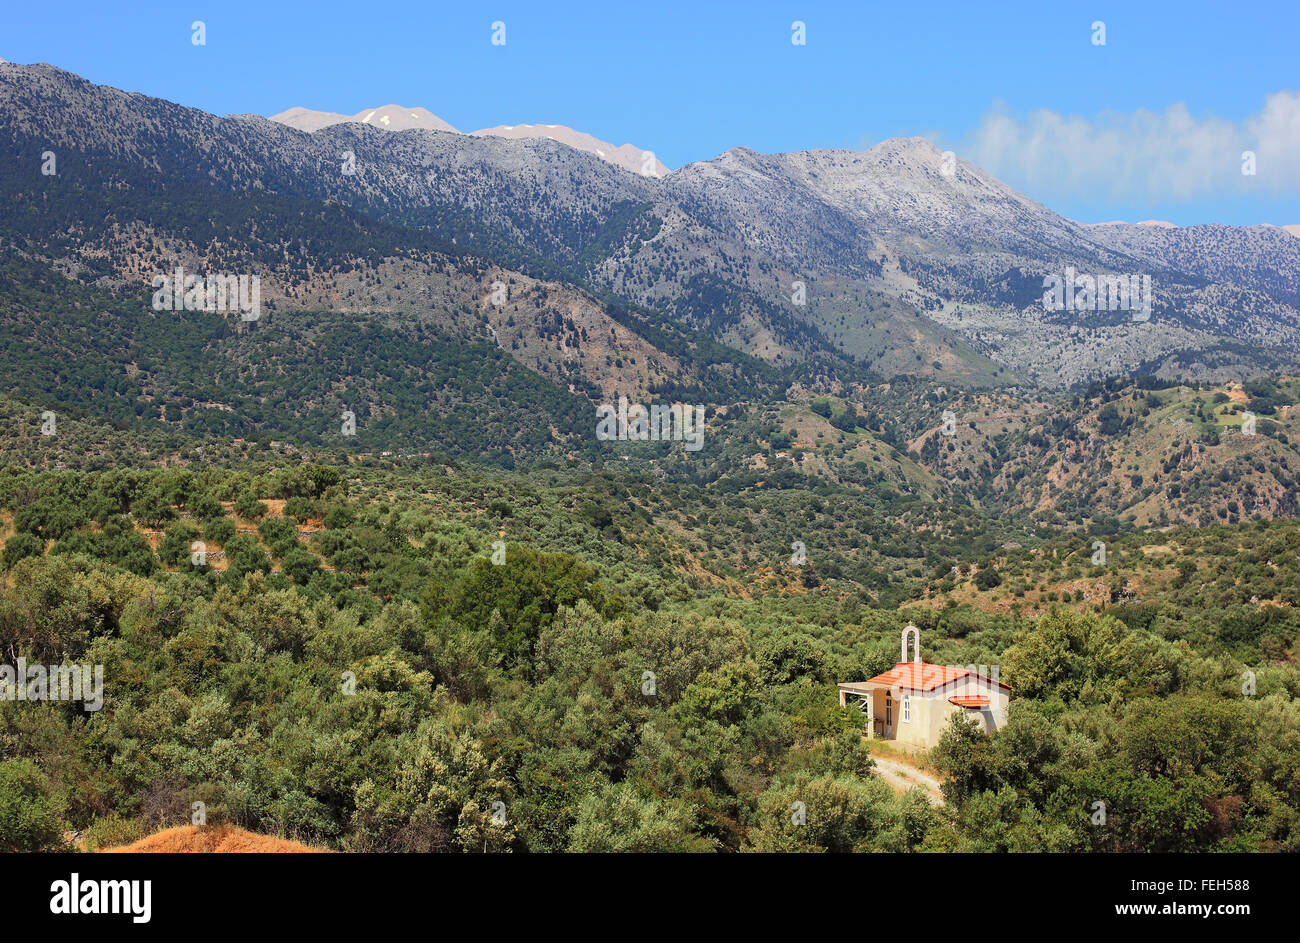 Crete, small church in the midst of olive trees in the Levka Ori area - Stock Image